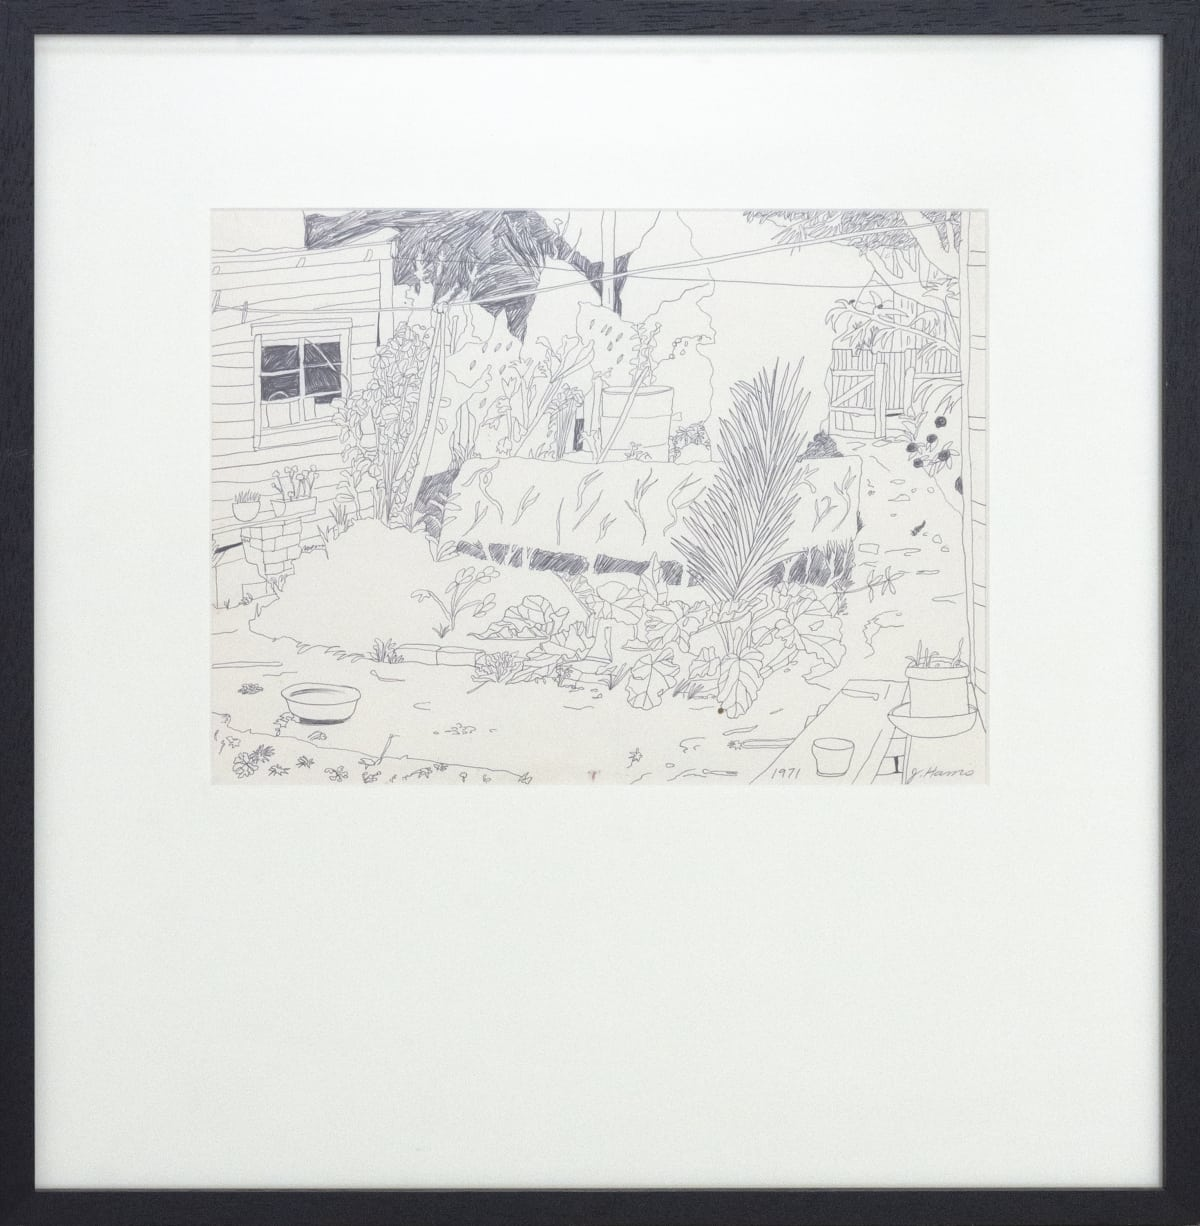 Jeffrey Harris Untitled [Backyard], 1971 Ink on paper 575 x 588mm (framed)